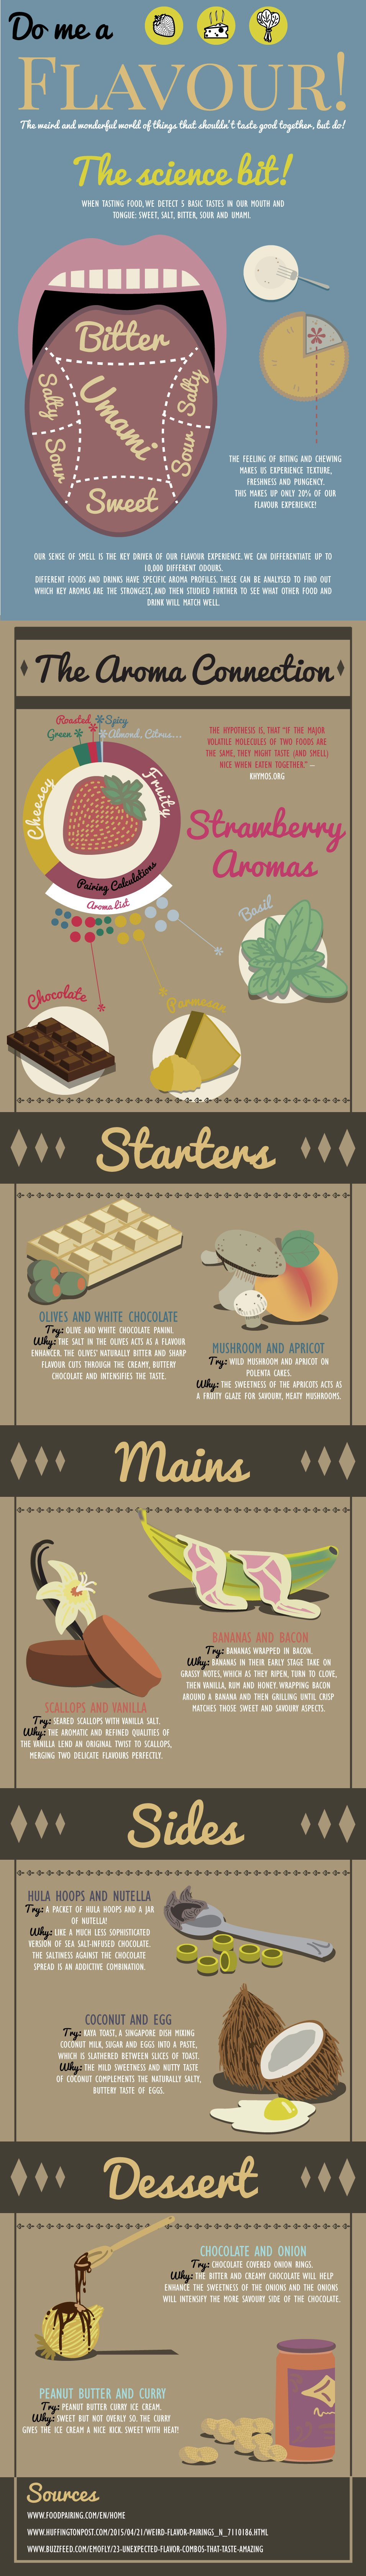 How to Dance the Taste Tango: The Science and Art of Flavors - Infographic